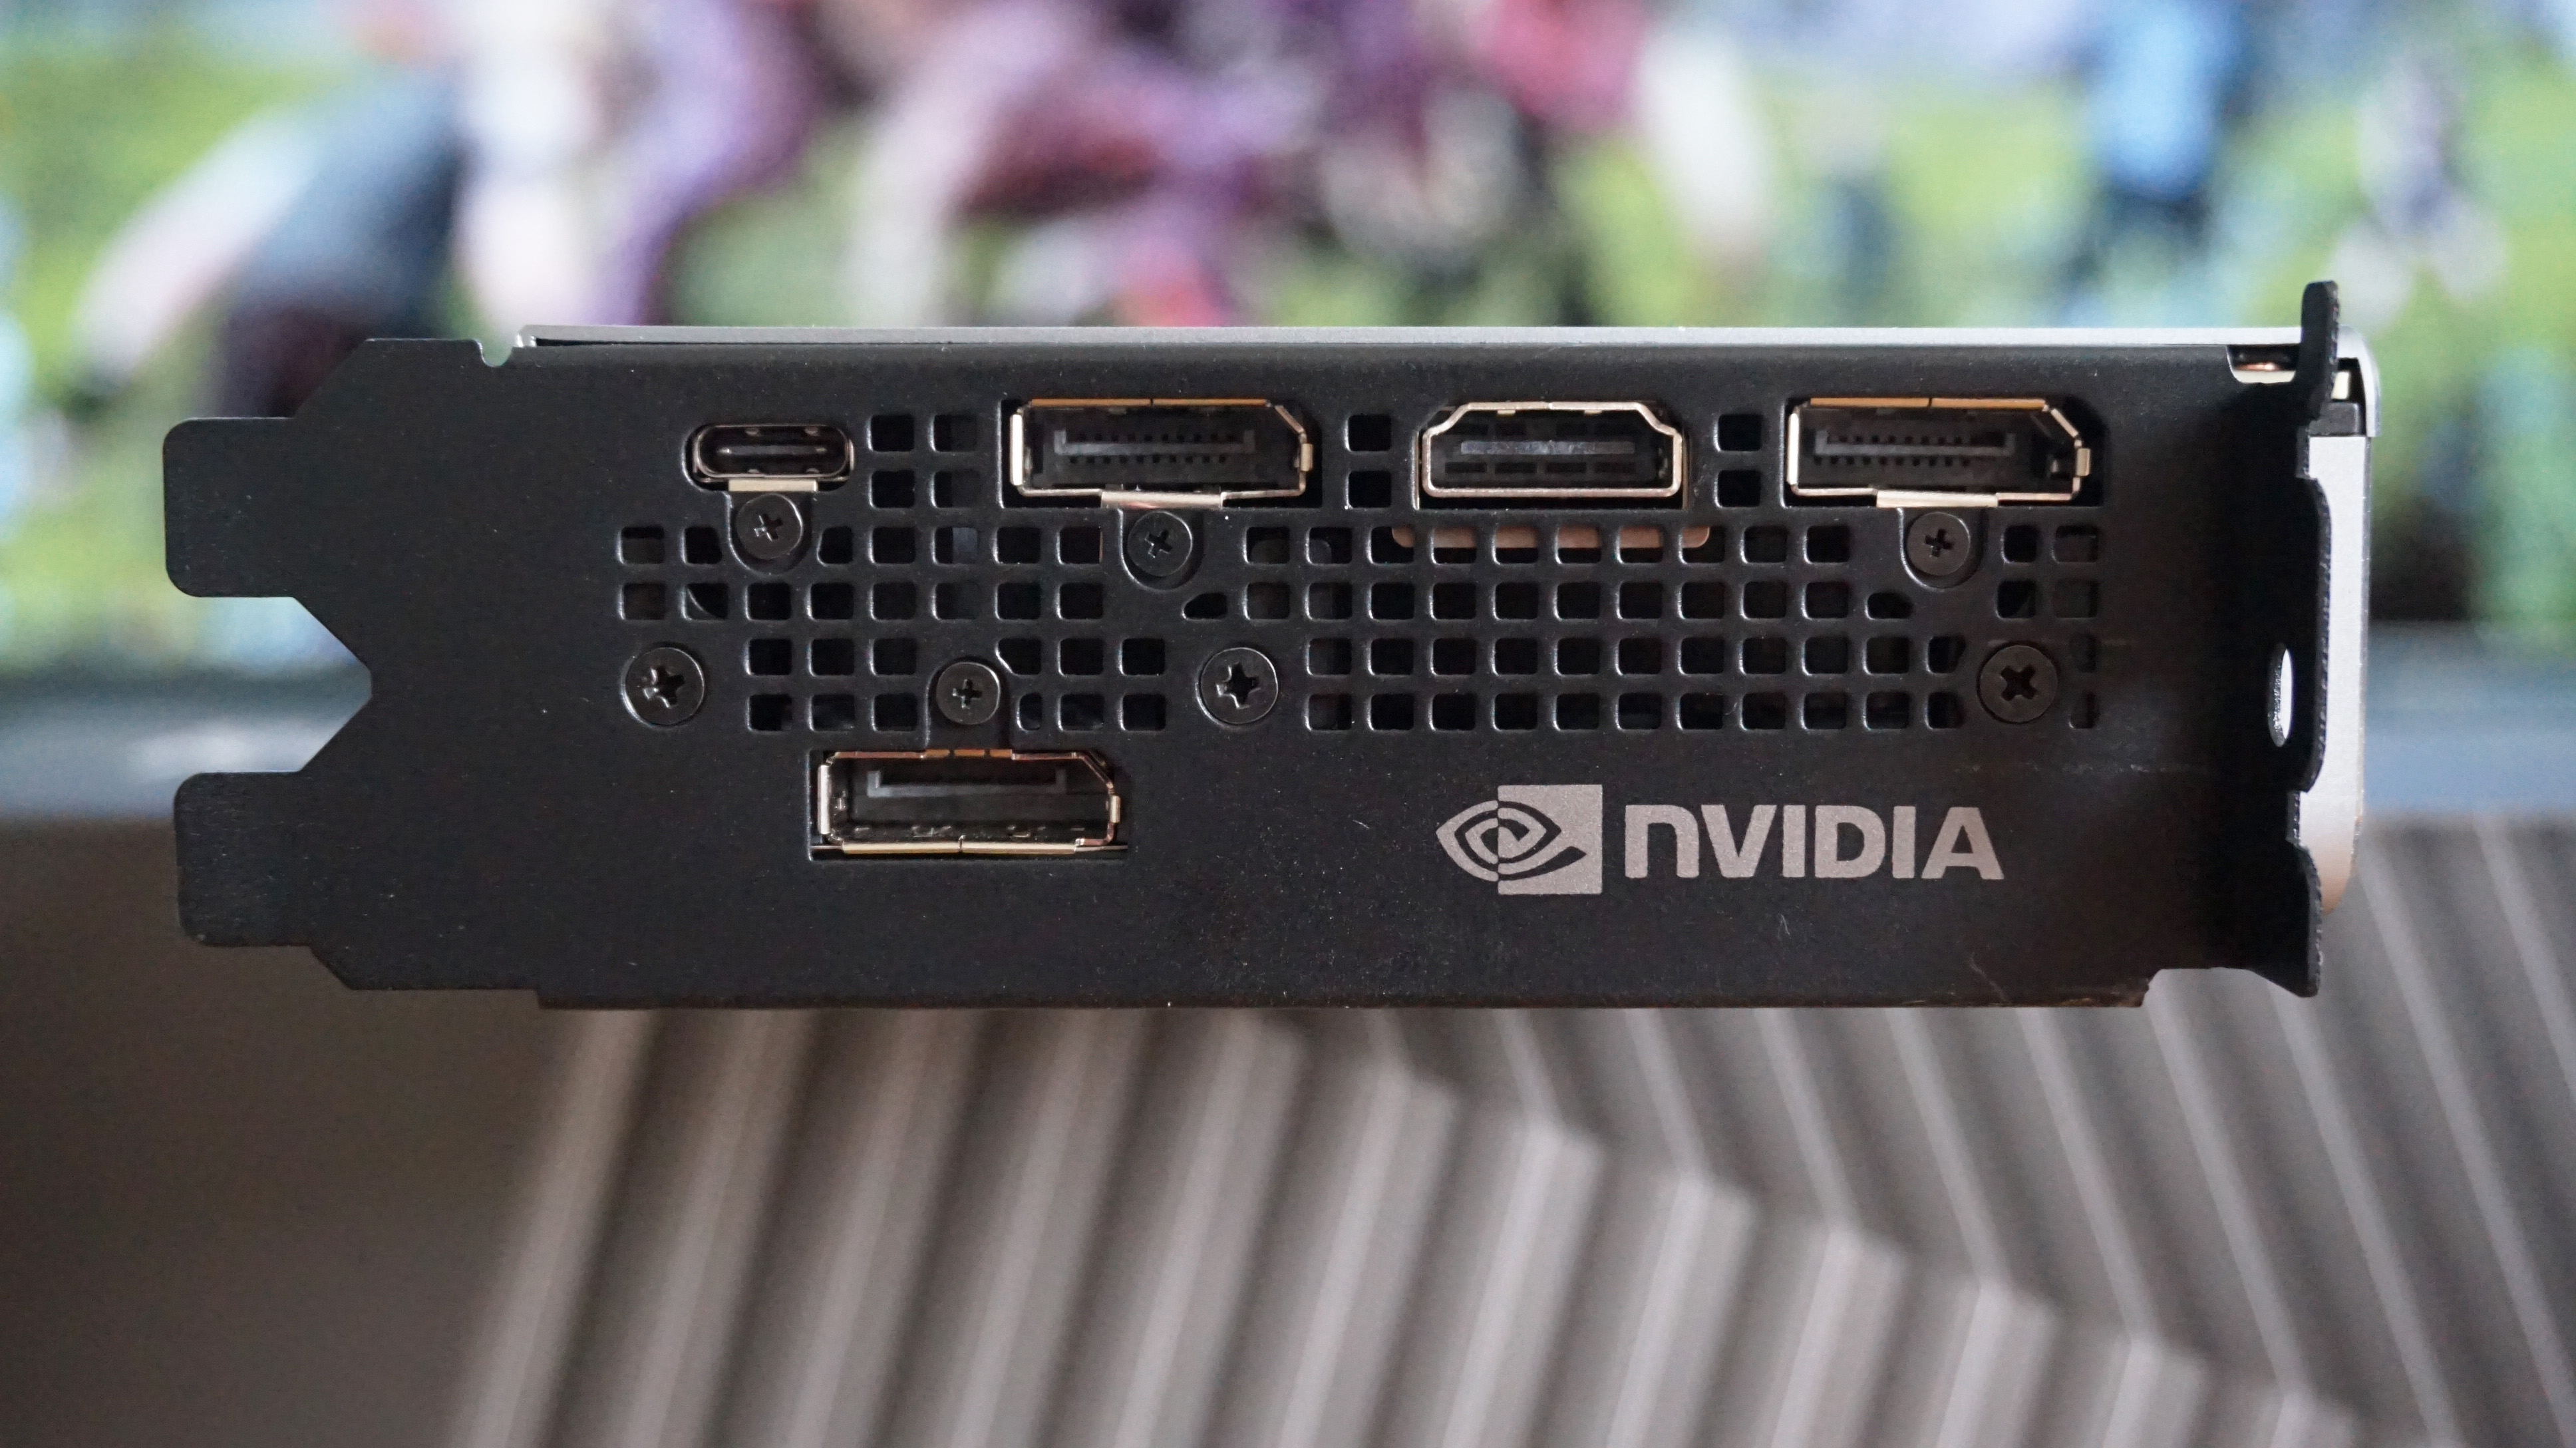 Nvidia GeForce RTX 2080Ti review: A true 4K monster card | Rock